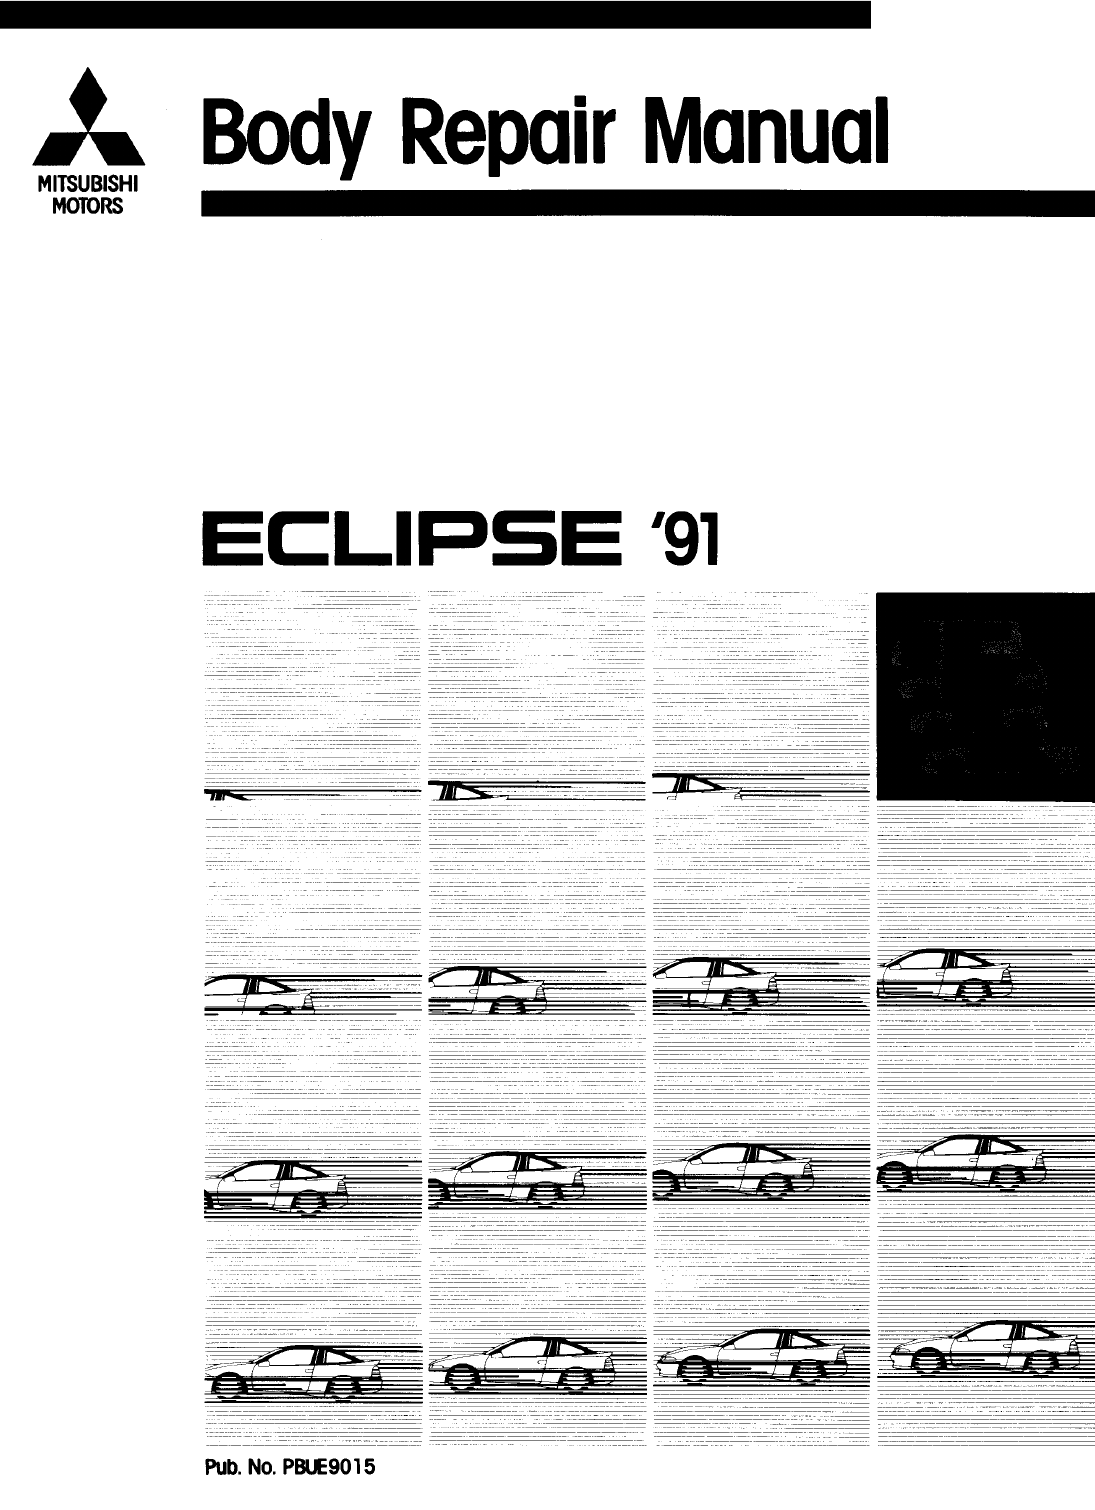 See our other Mitsubishi Eclipse Manuals: